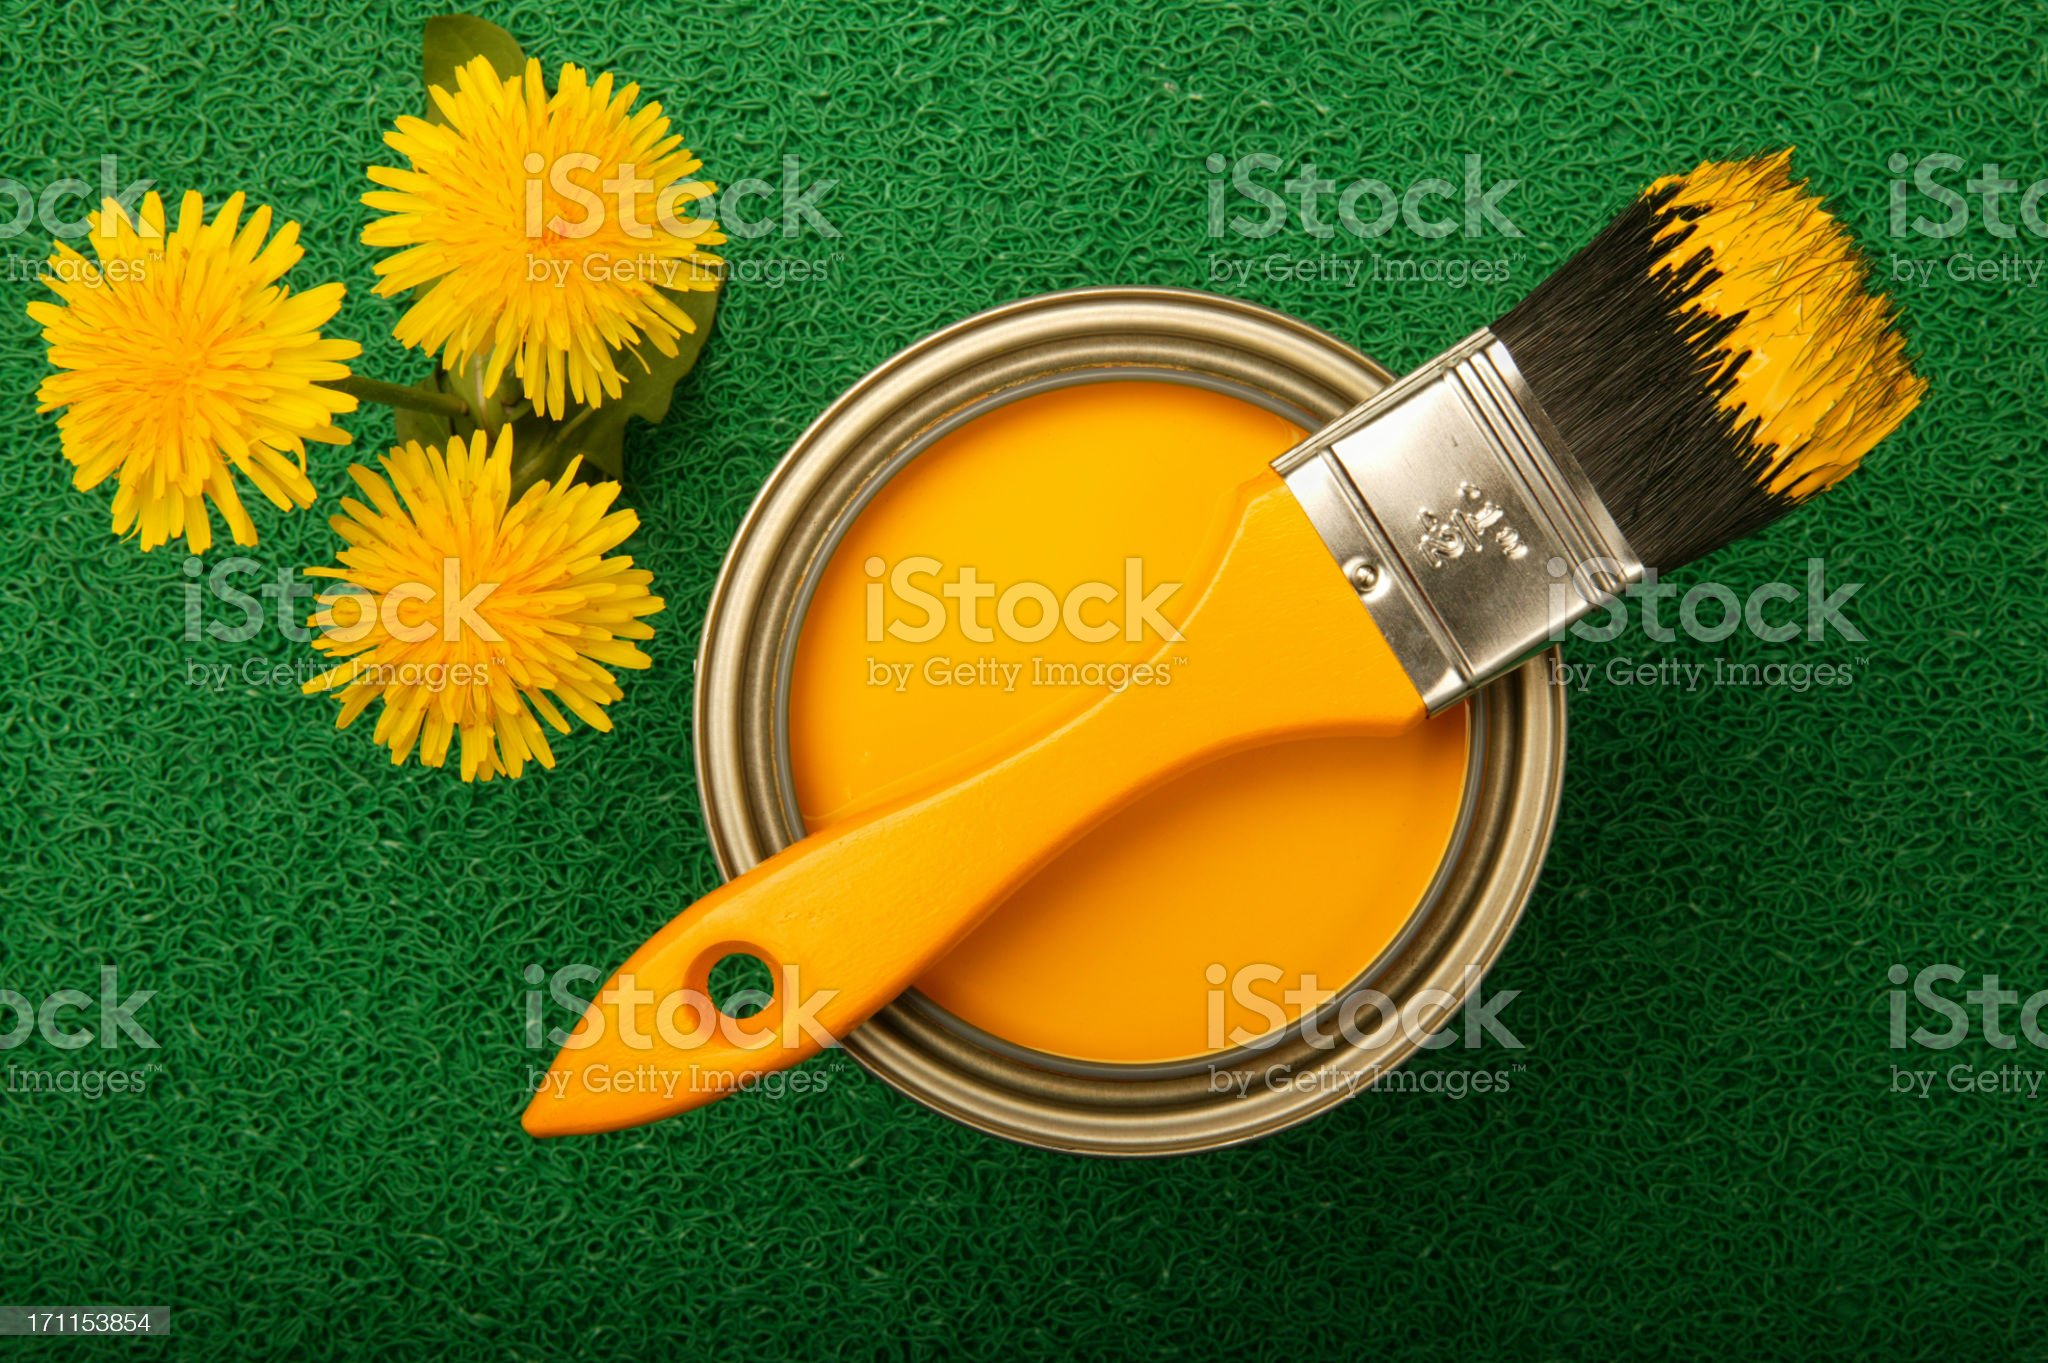 Yellow paint and dandelions on green turf royalty-free stock photo